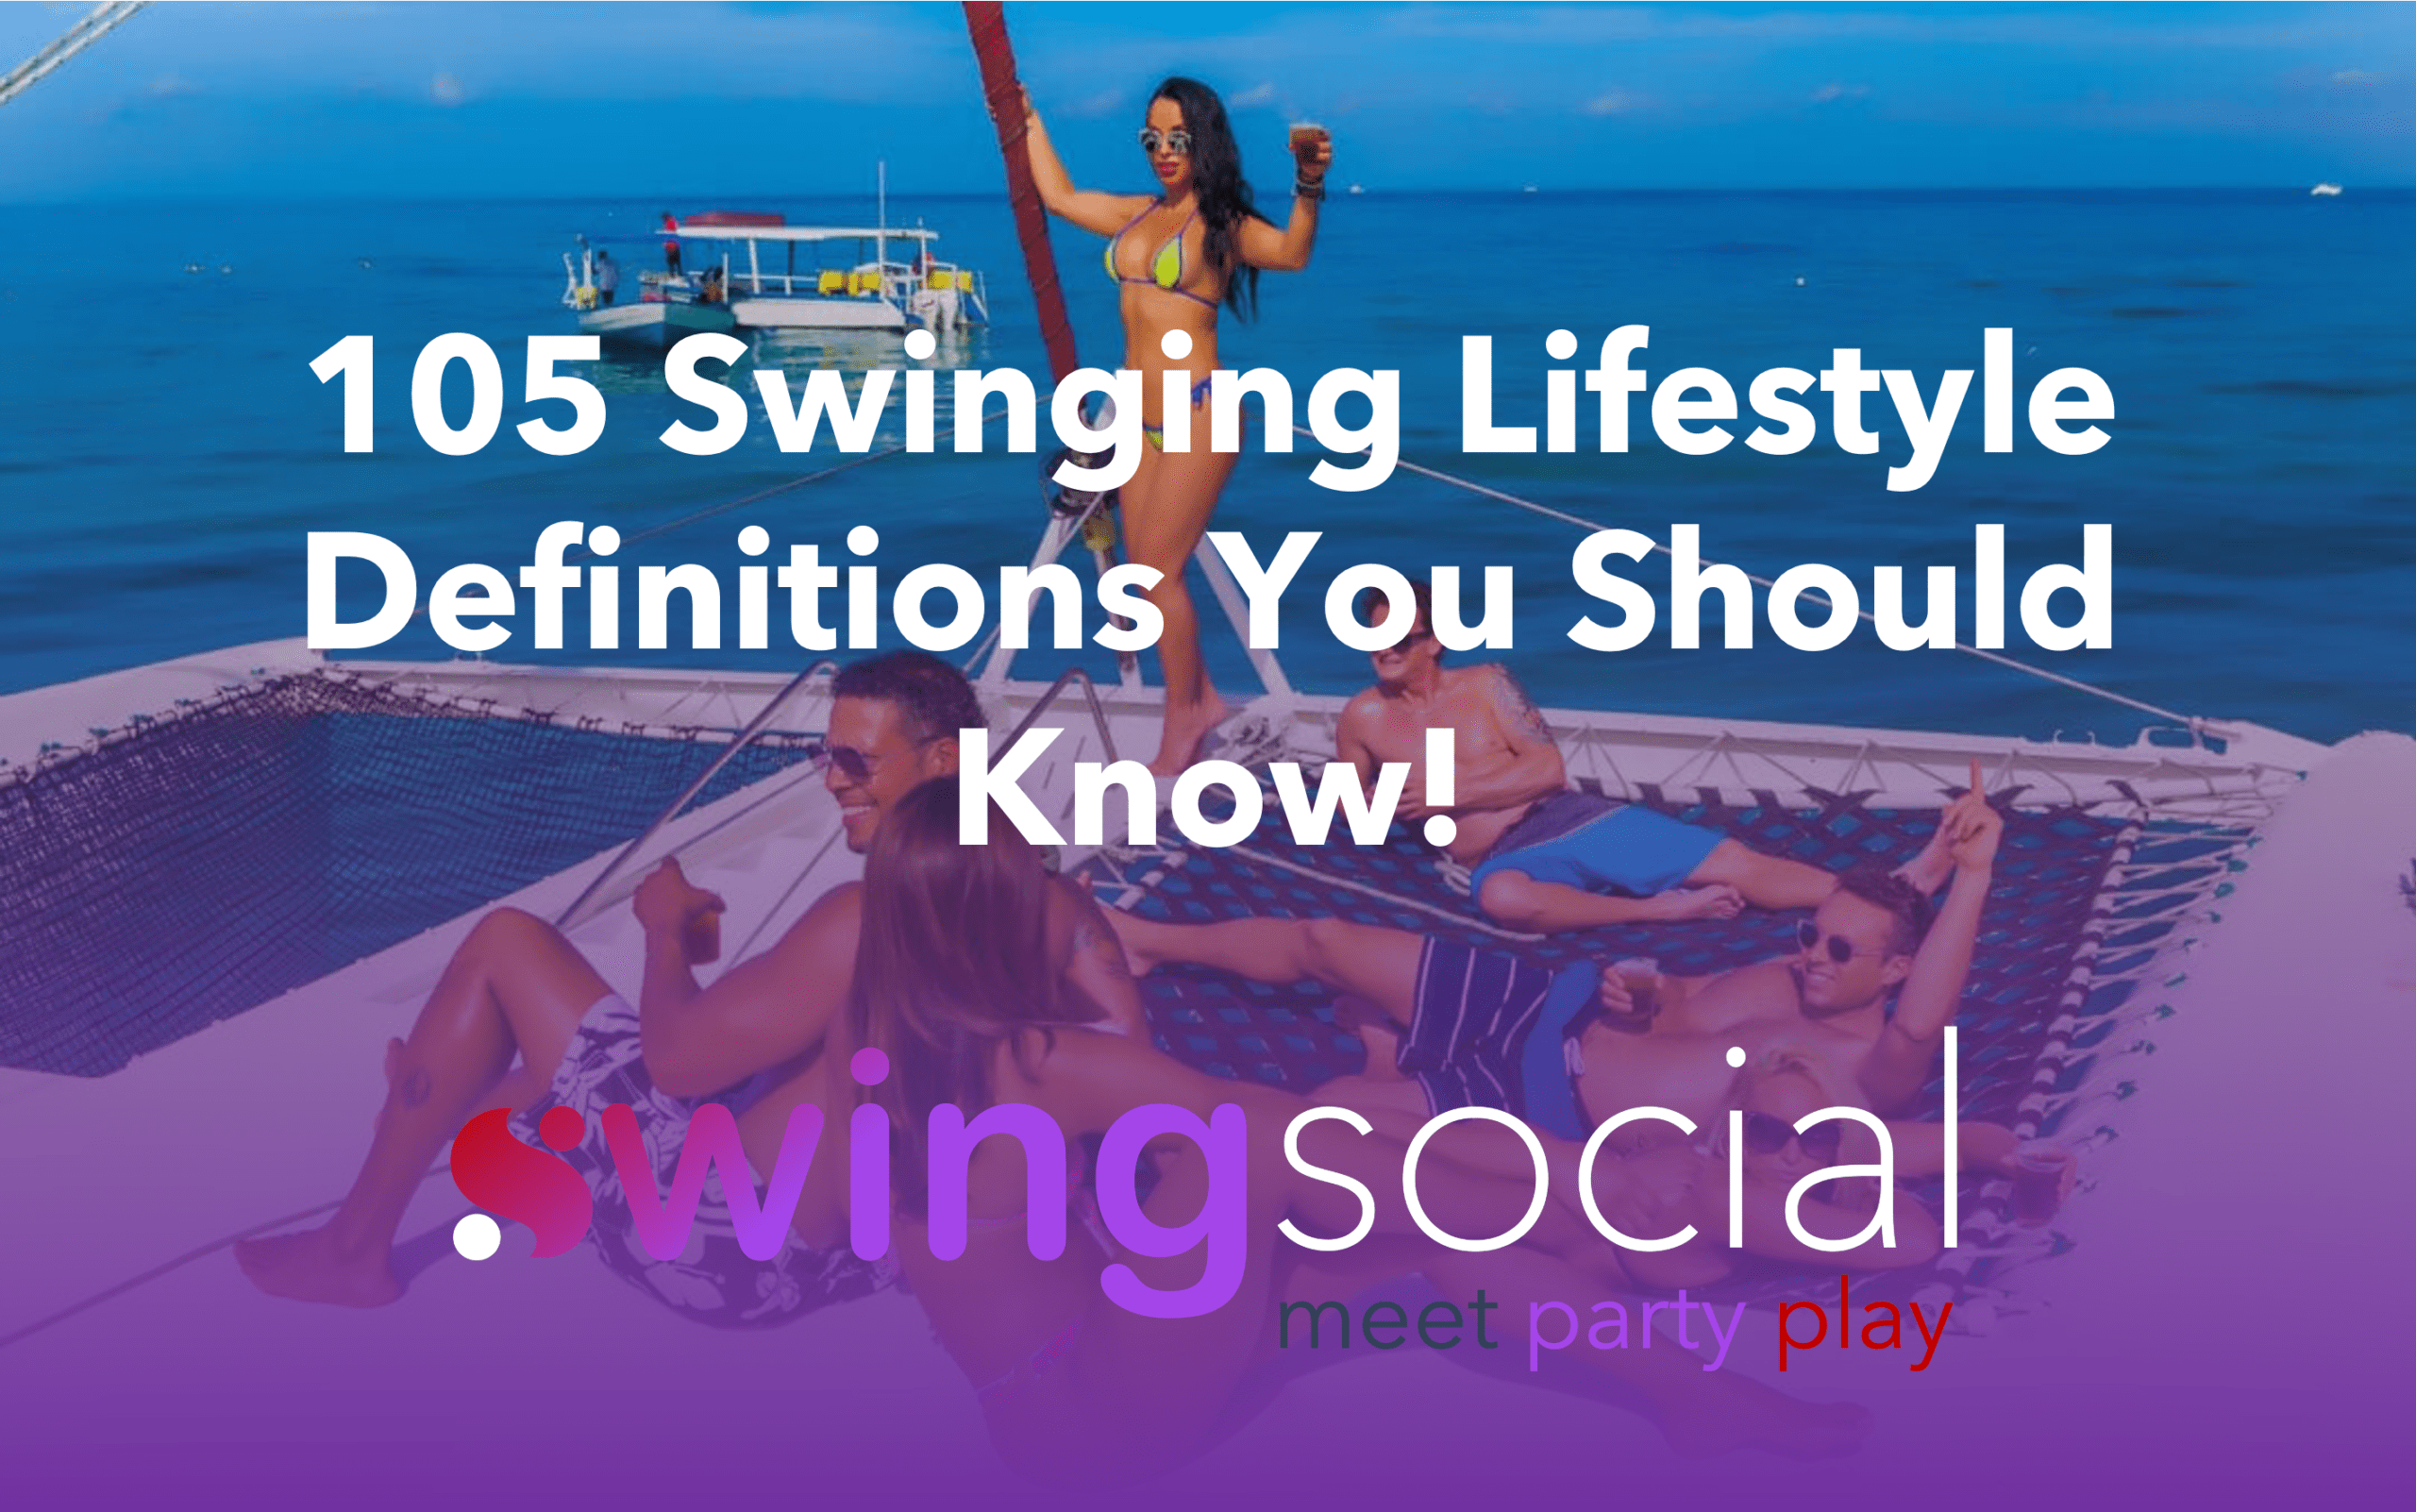 105 Swinging Lifestyle Definitions You Should Know